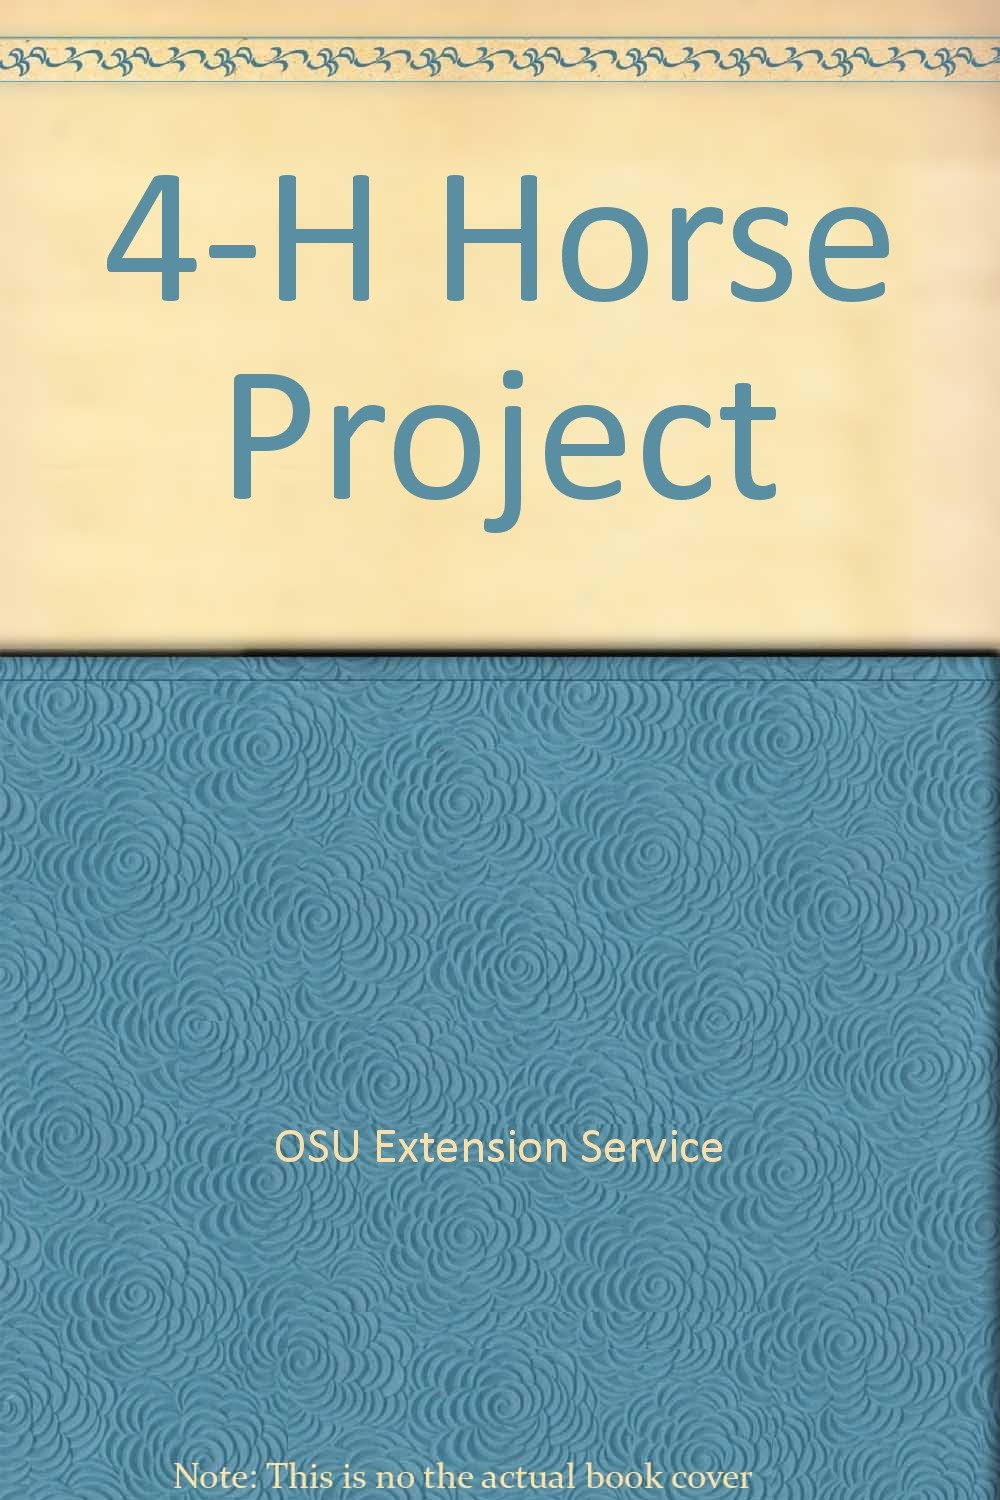 4-H Horse Project